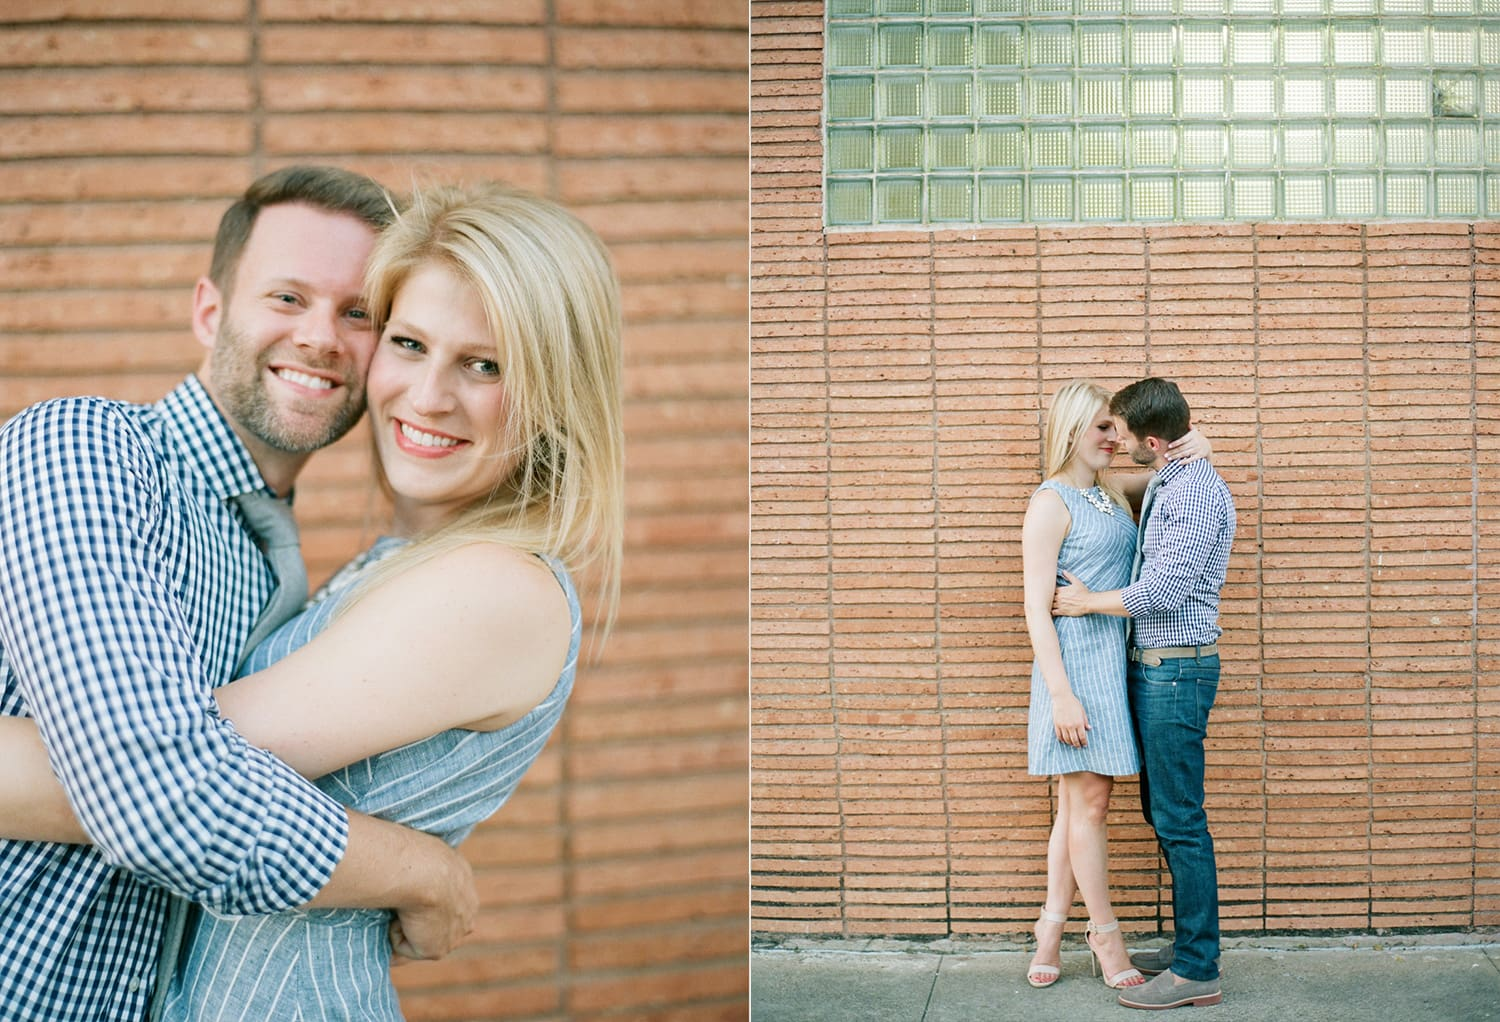 DEEP_ELLUM_TX_FILM_ENGAGEMENT_SHOOT__MATTHEW_MOORE_PHOTOGRAPHY_PAN_017.jpg